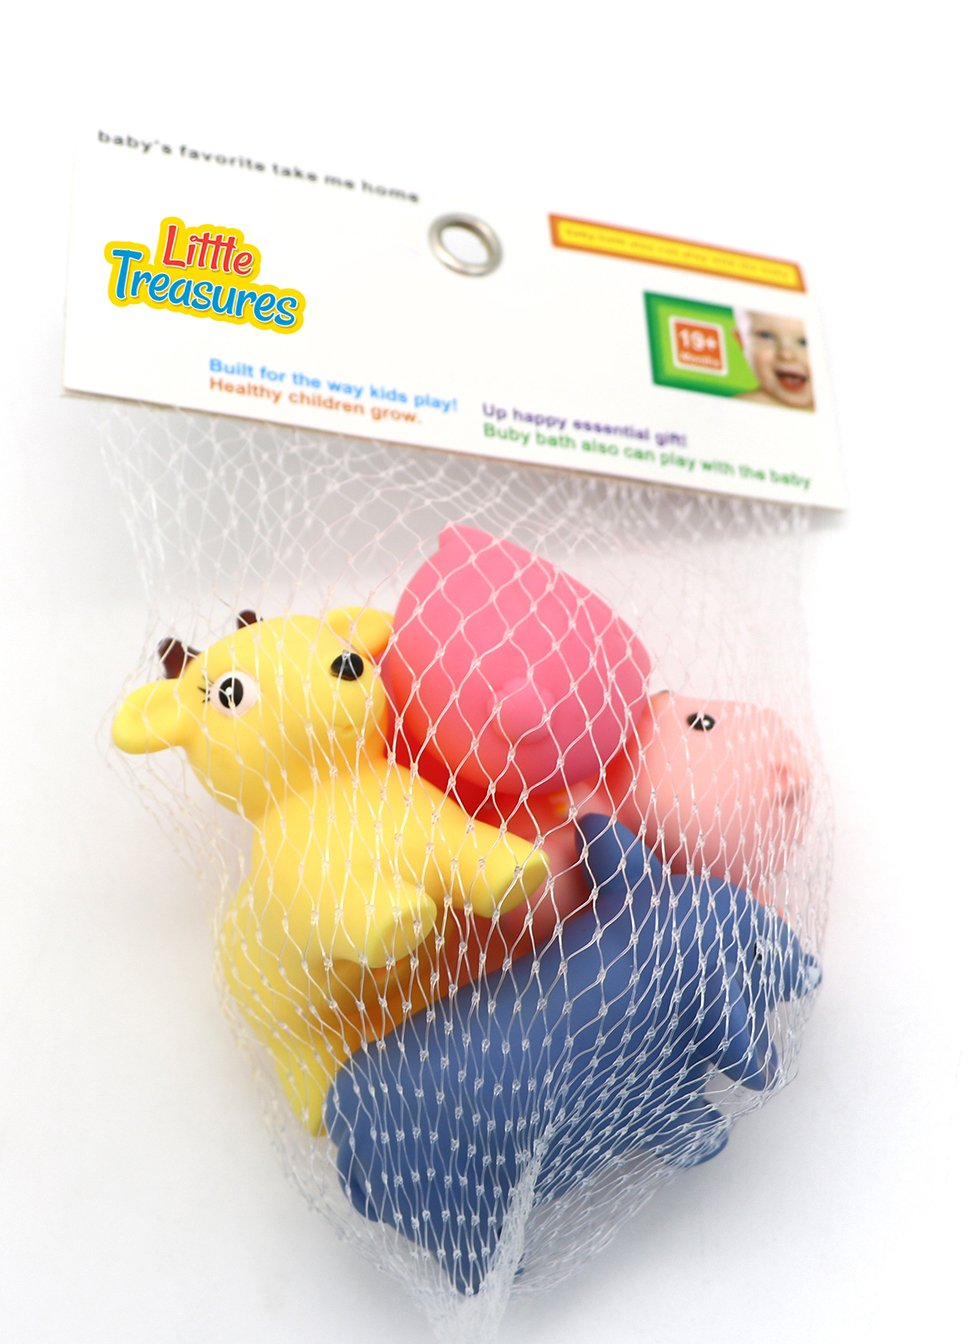 Little Treasures B01BYSMQ6C Bath toys for babys toddlers and infants 19 months have fun bathing with net storage bag and 4 different animal squirts